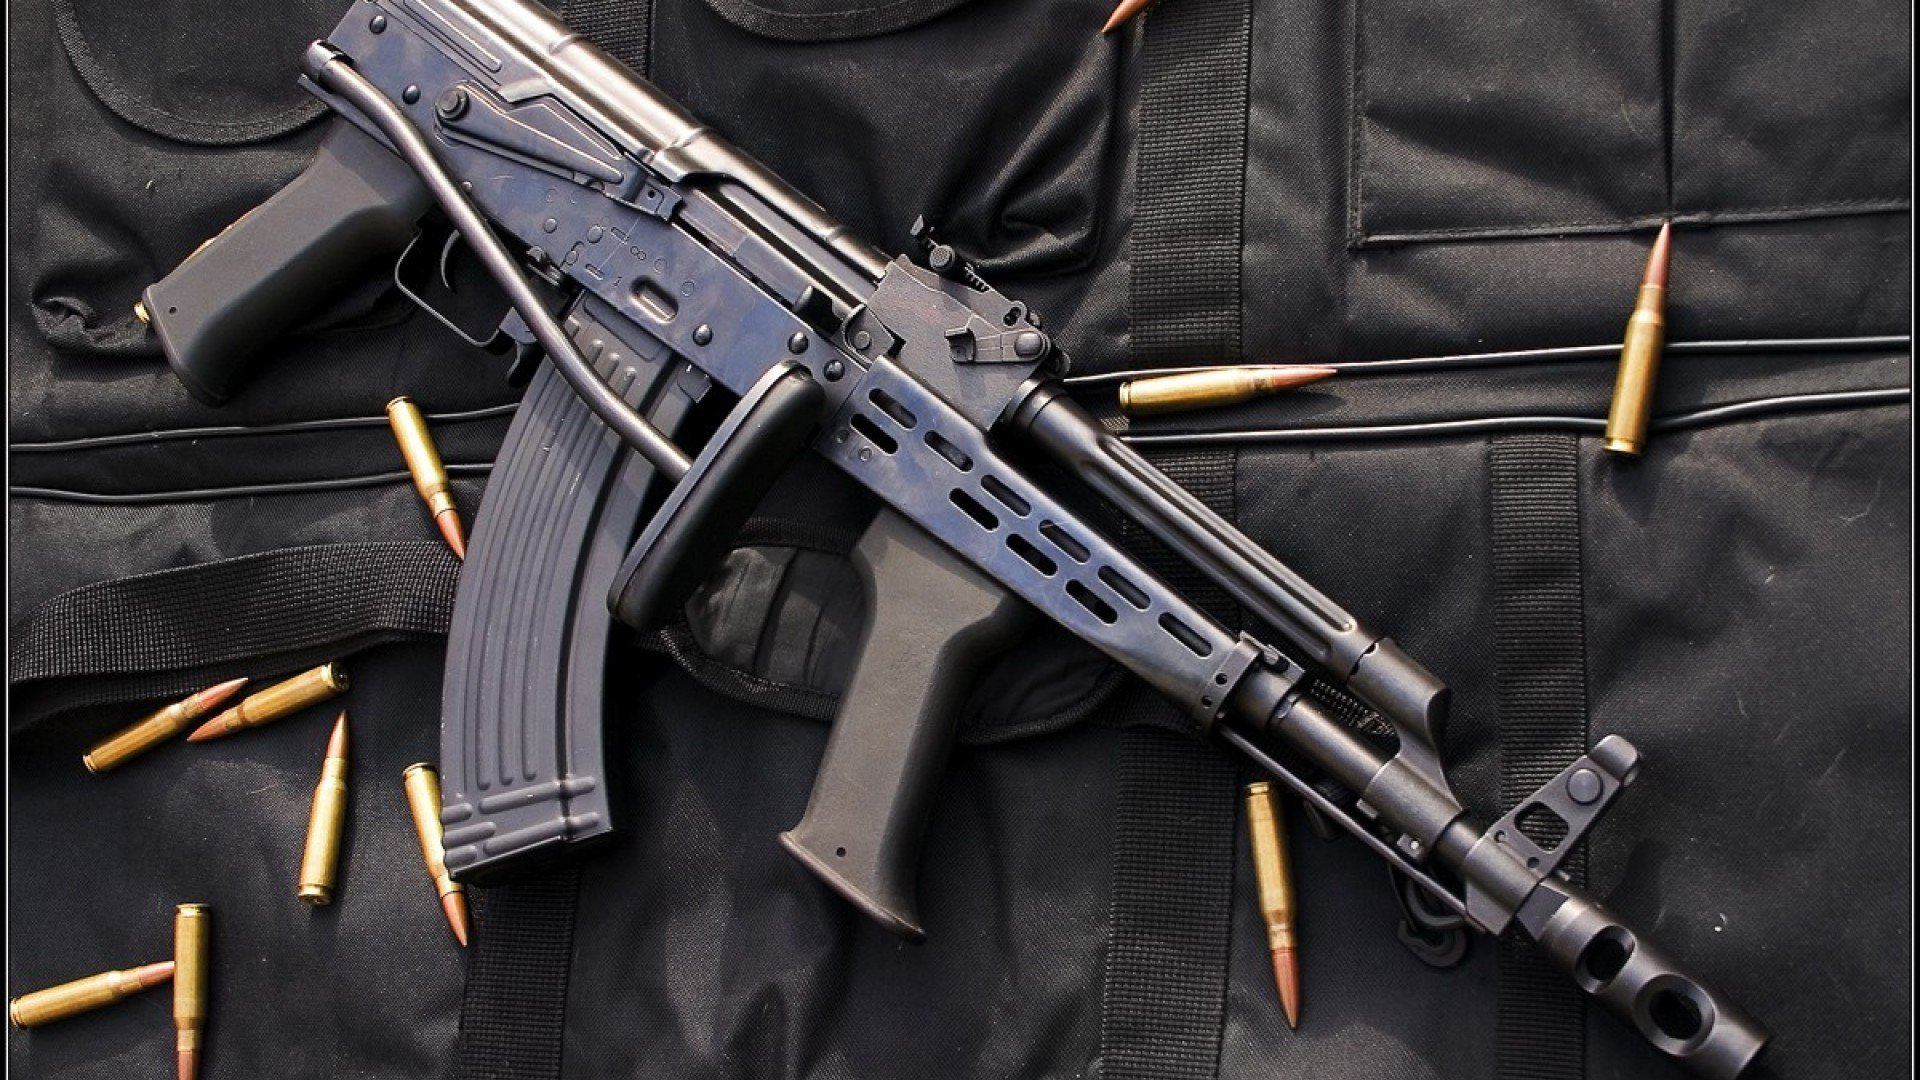 Free Download Ak 47 Wallpaper ID123813 Full Hd 1080p For Computer